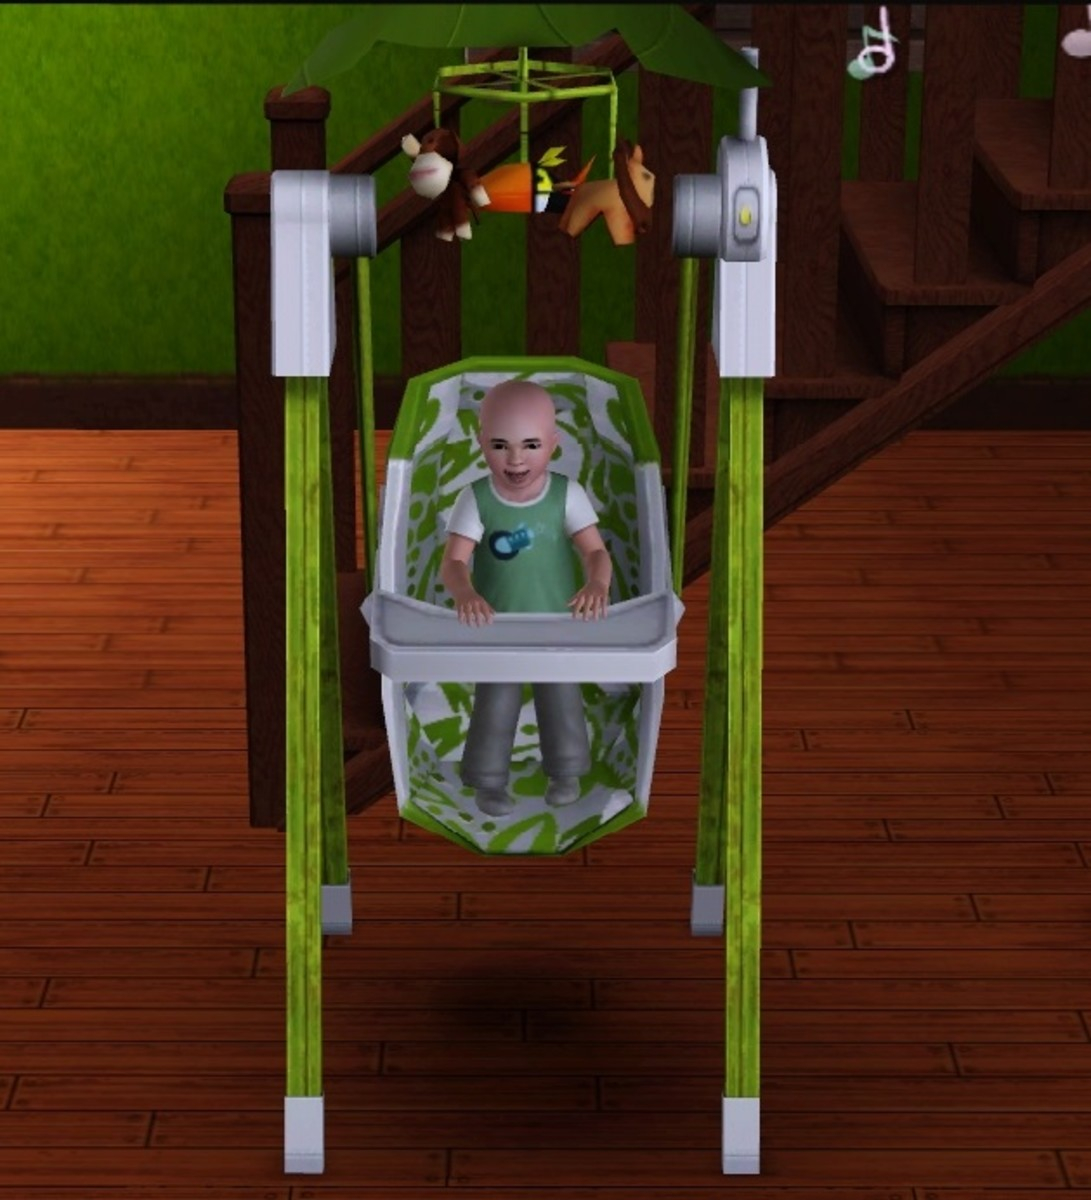 The Sims 3 Baby Swing